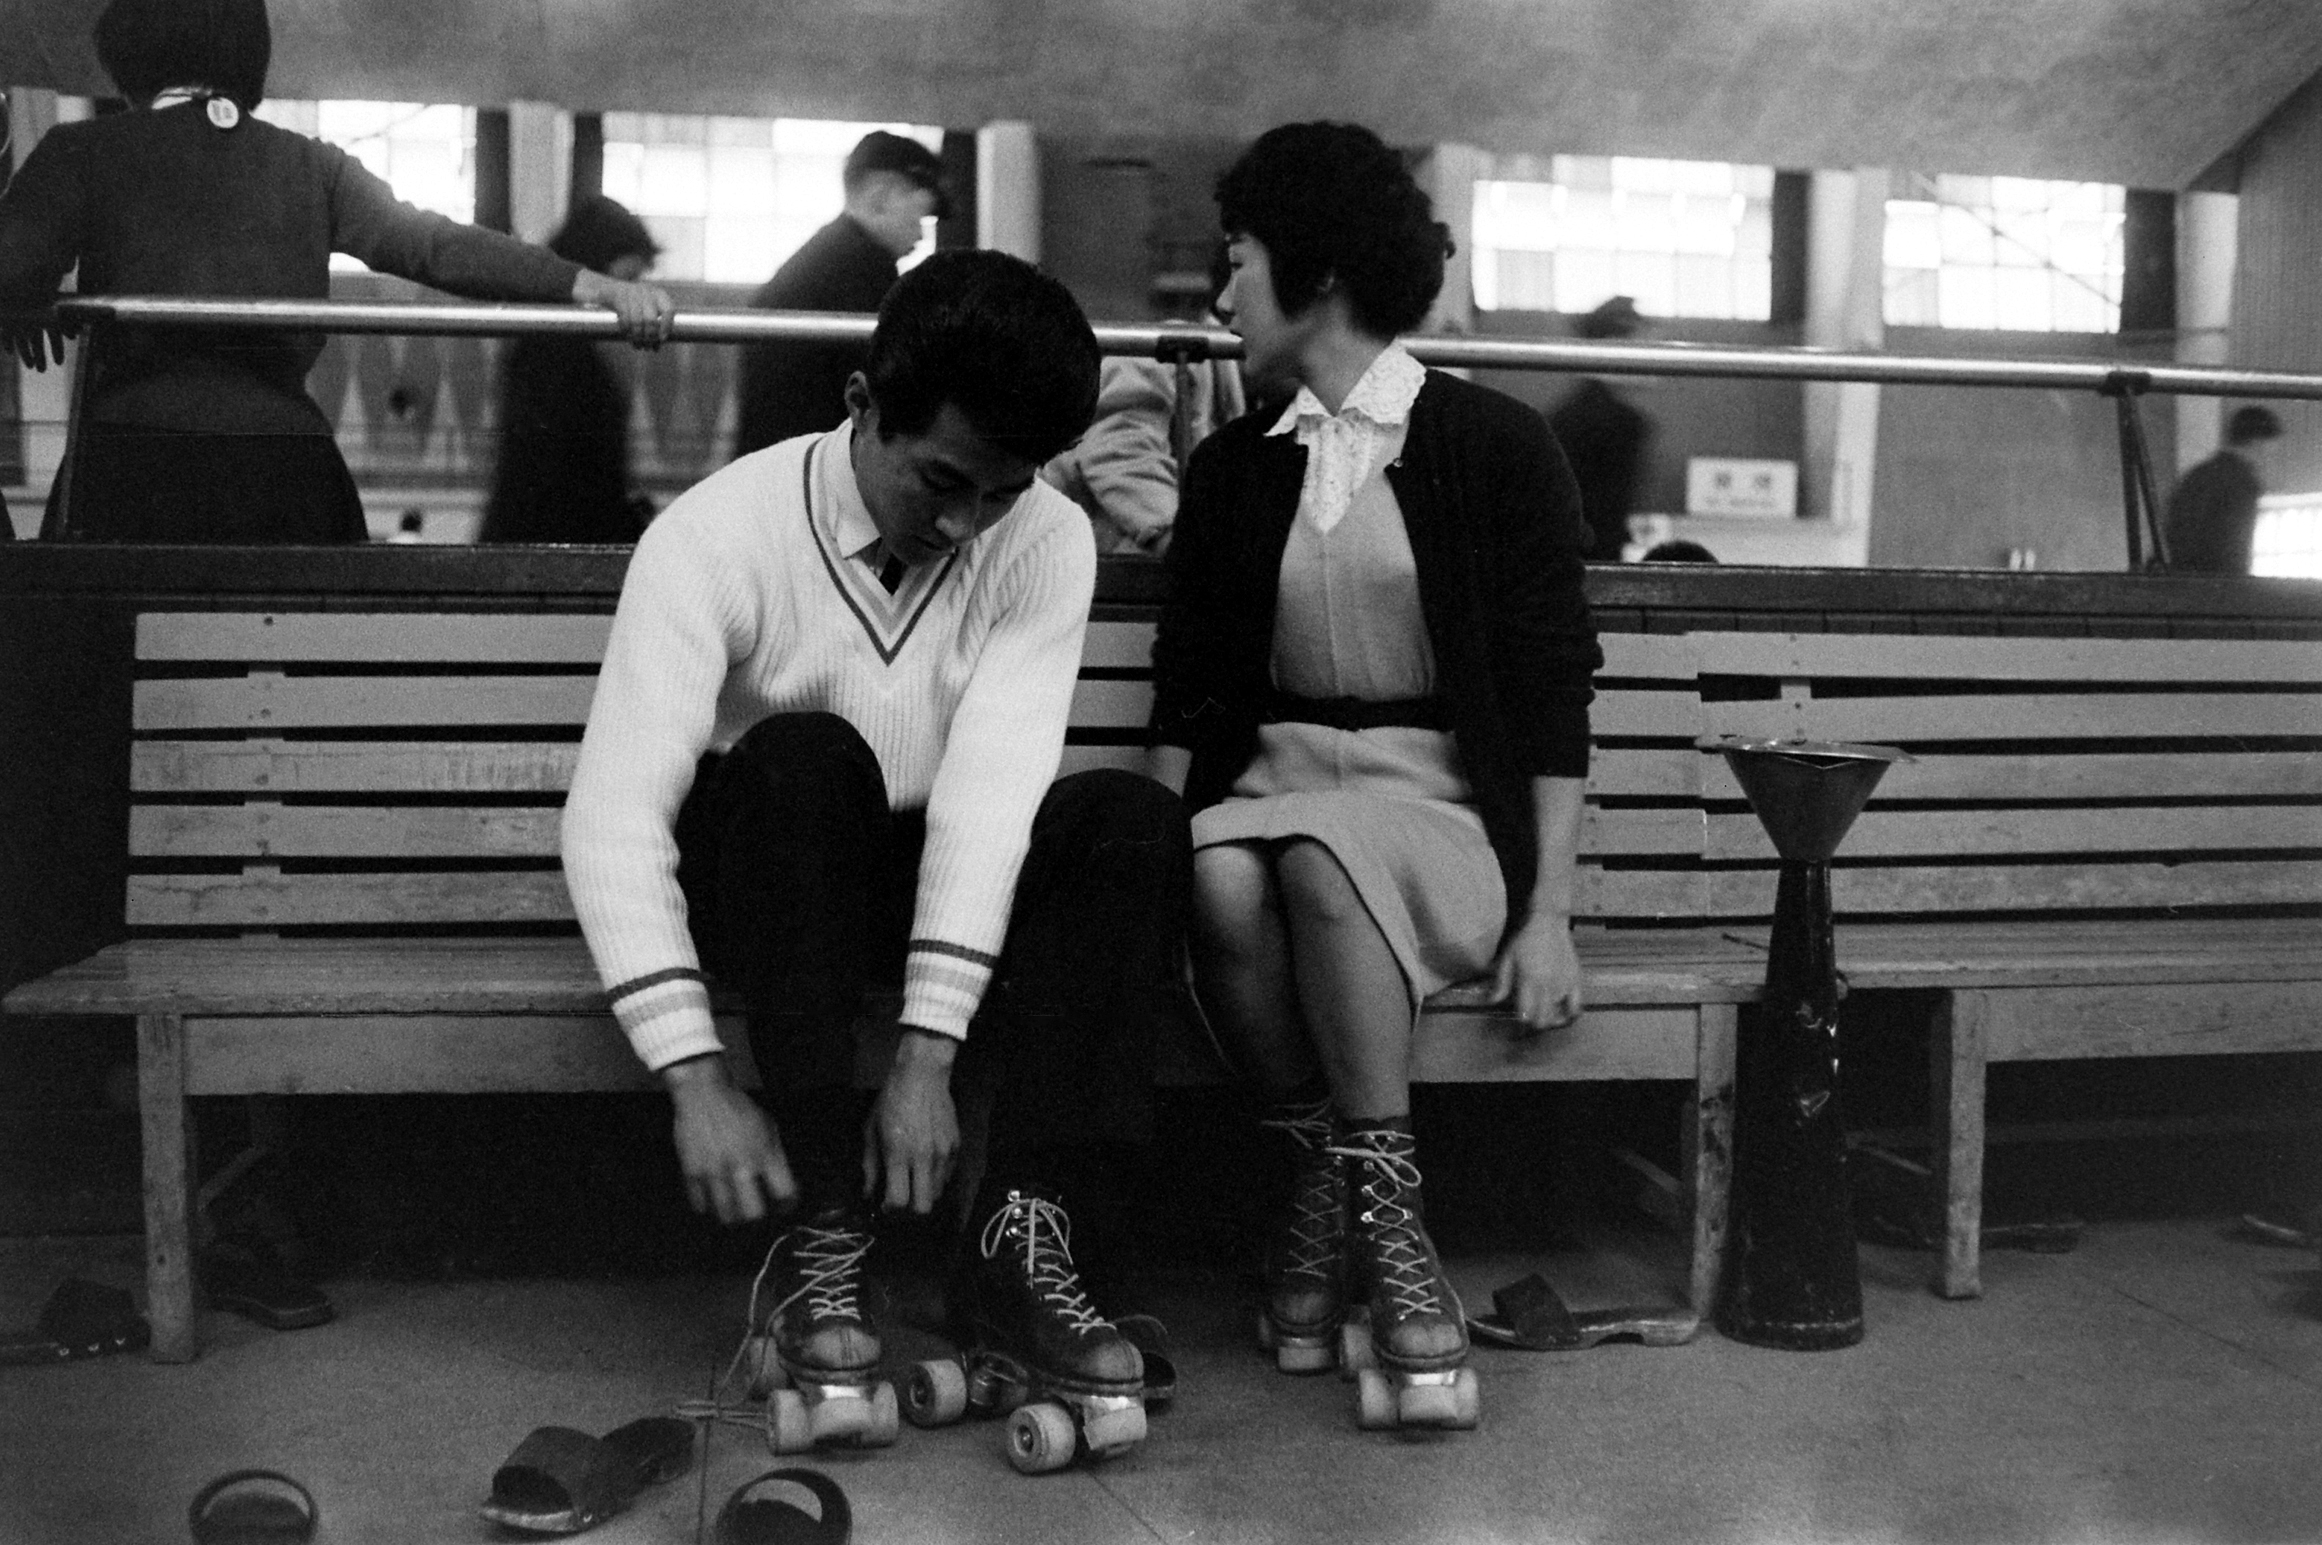 Nohito Mukai, left, and his girlfriend, Hiroko Inayaki, go roller skating on a date in Tokyo.  March 1959.